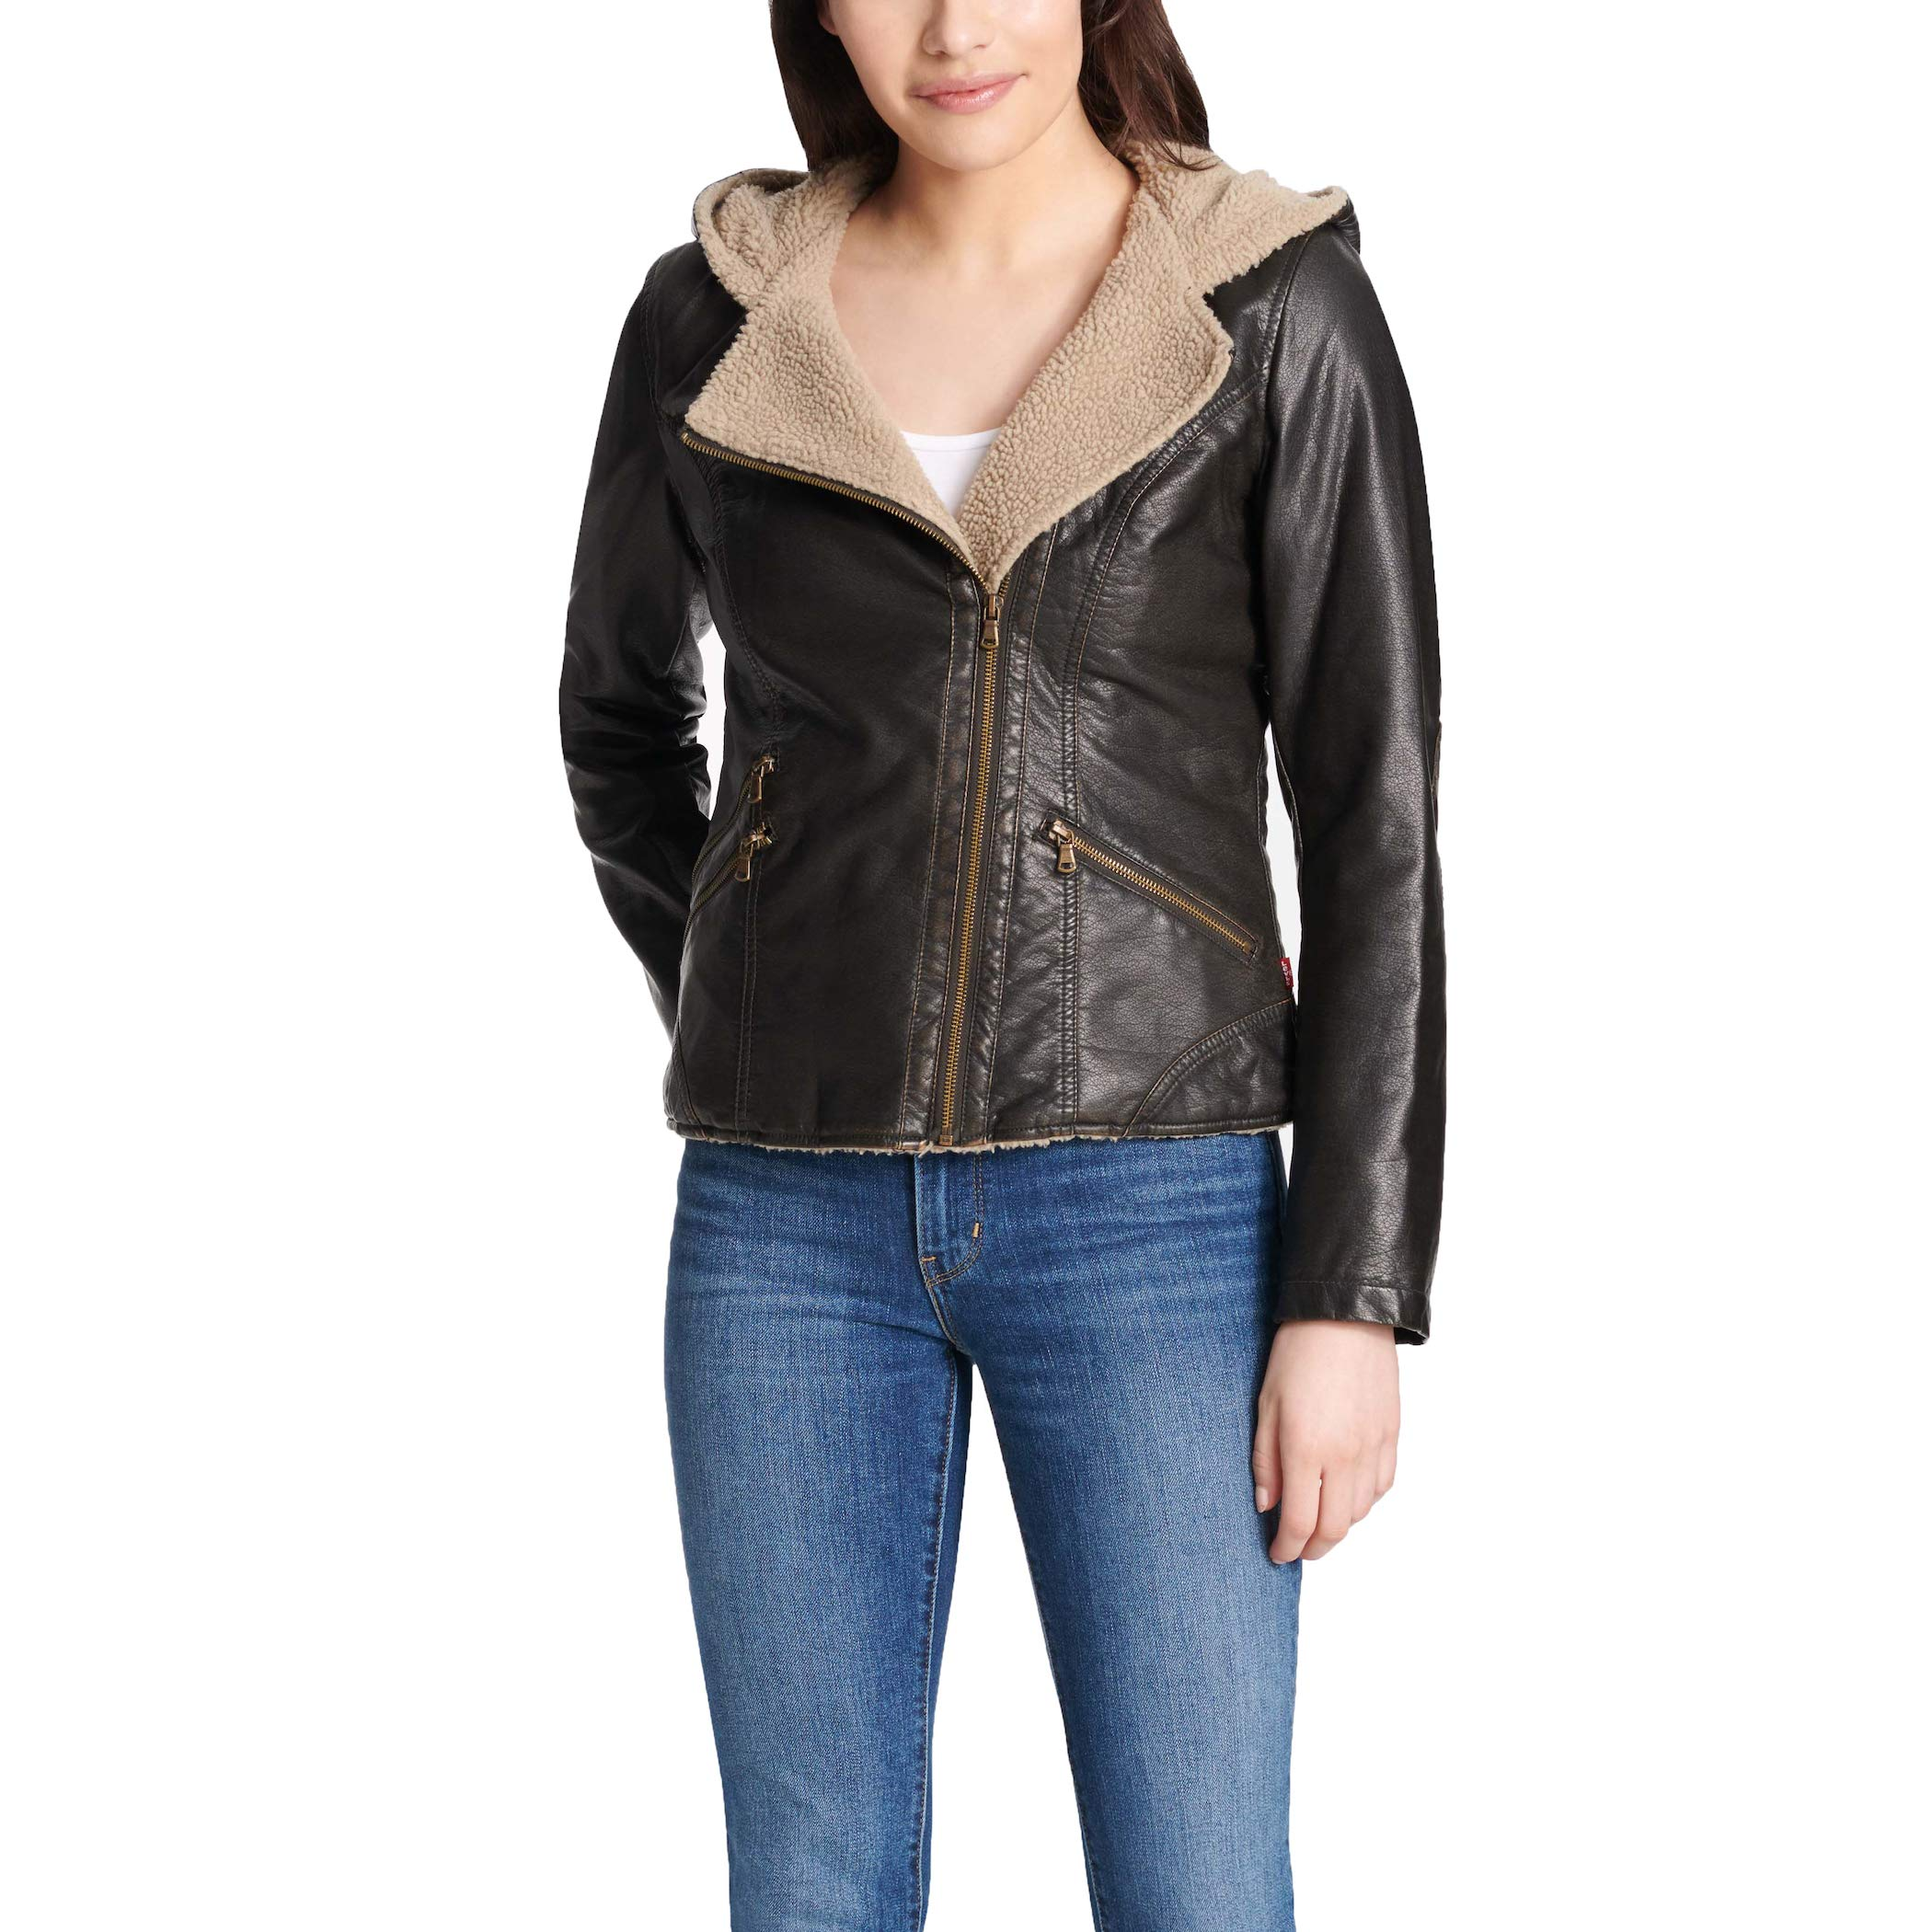 Levi's Women's Assymetrical Sherpa Lined Faux Fur Jacket, Dark Brown, Large by Levi's